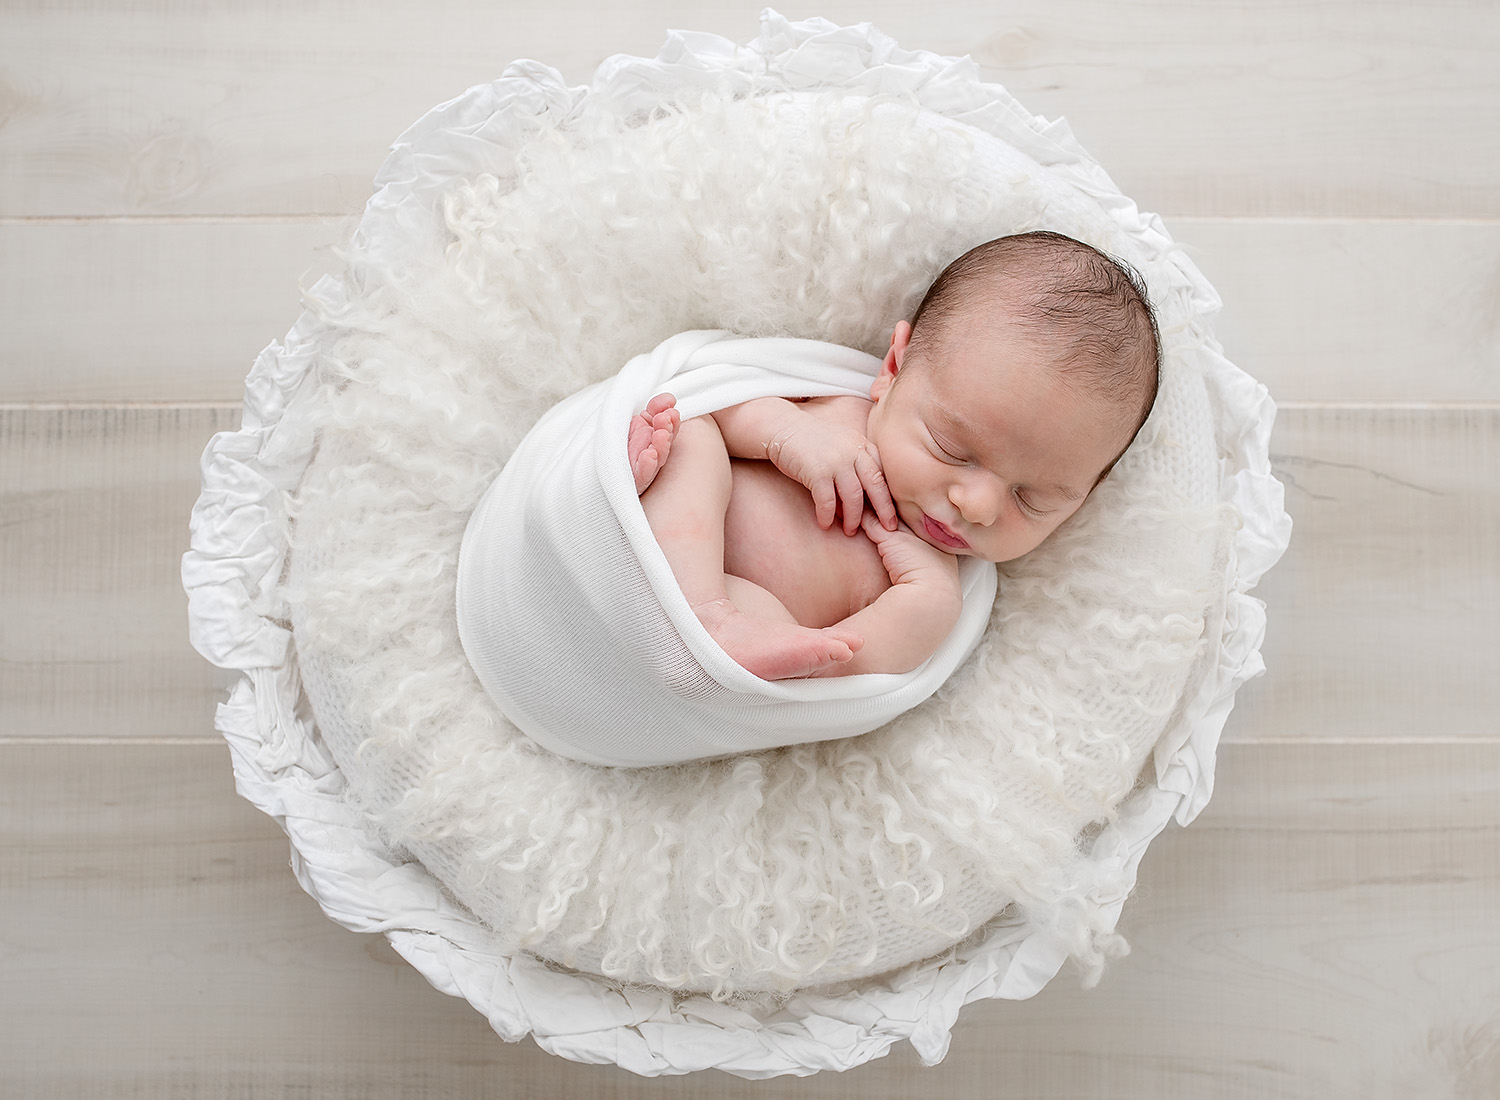 newborn-photography-photographer-savannah-pooler-pembroke-richmond-hill-hinesville-ellabell-guyton-ga6.jpg